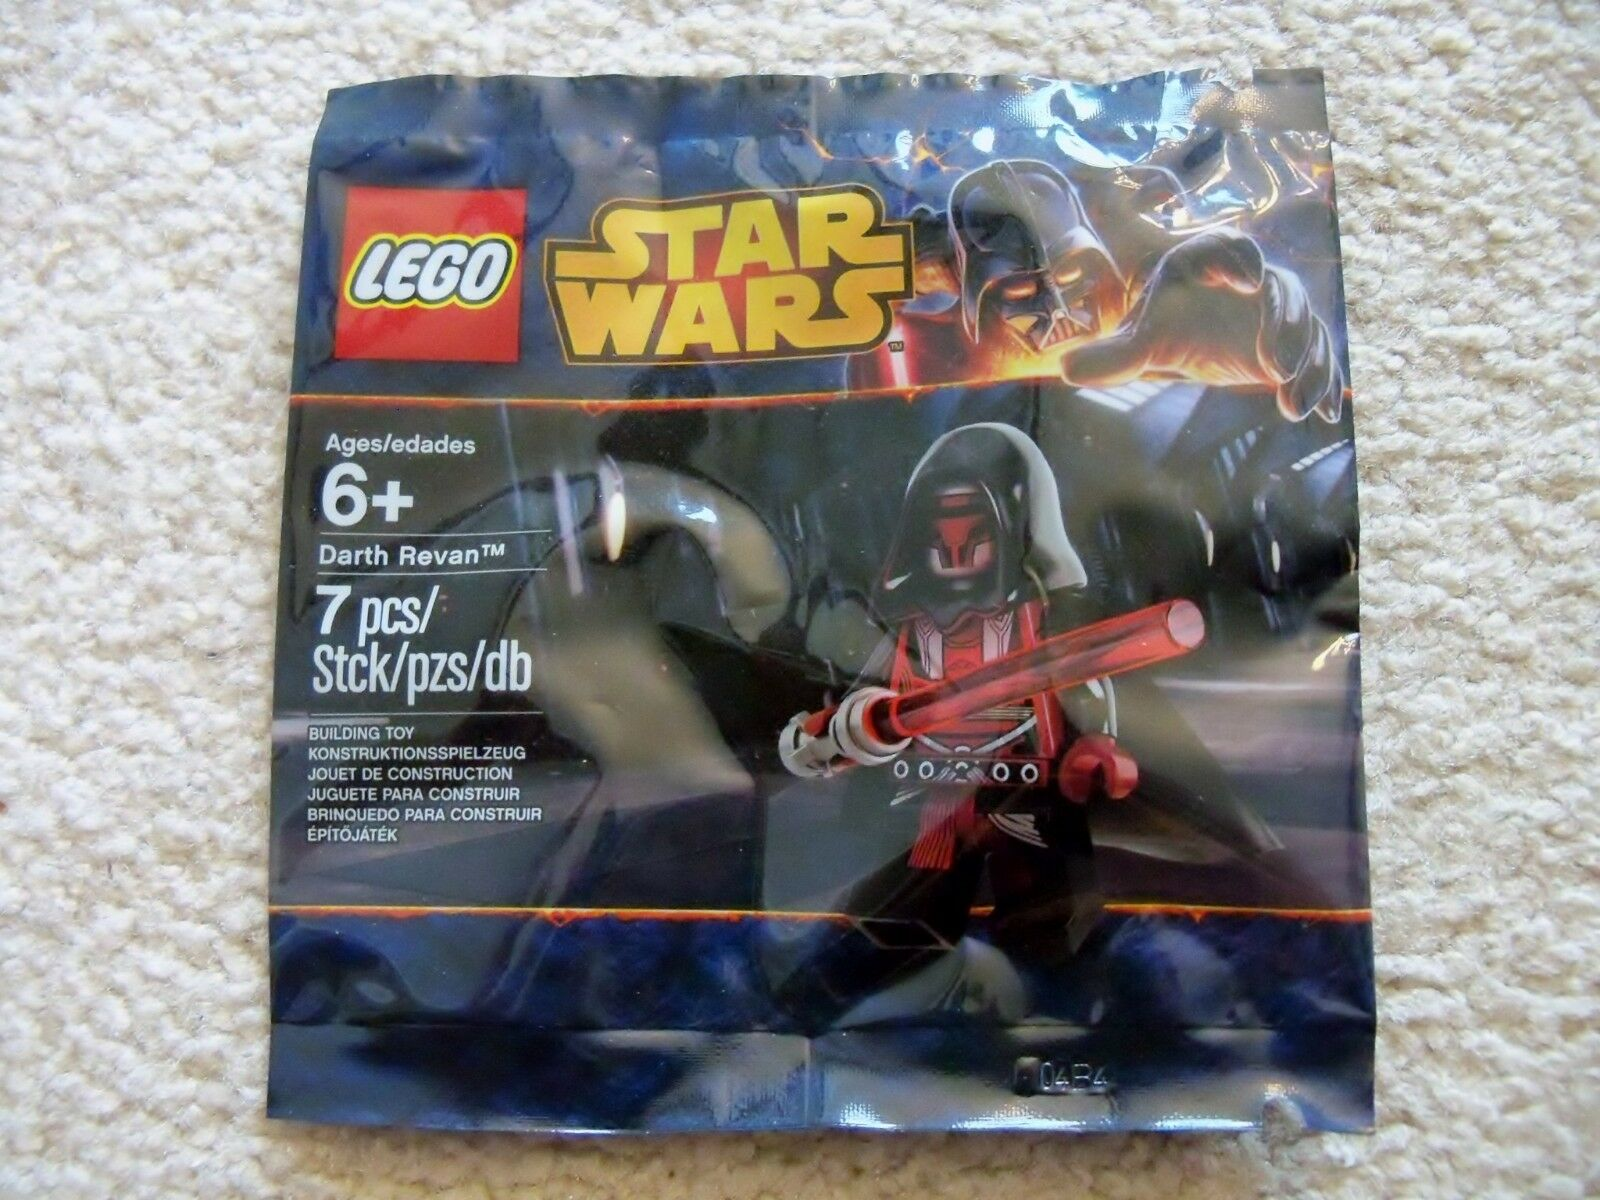 LEGO Star Wars Old Republic - Super Rare - Darth Revan 5002123 - New & Sealed